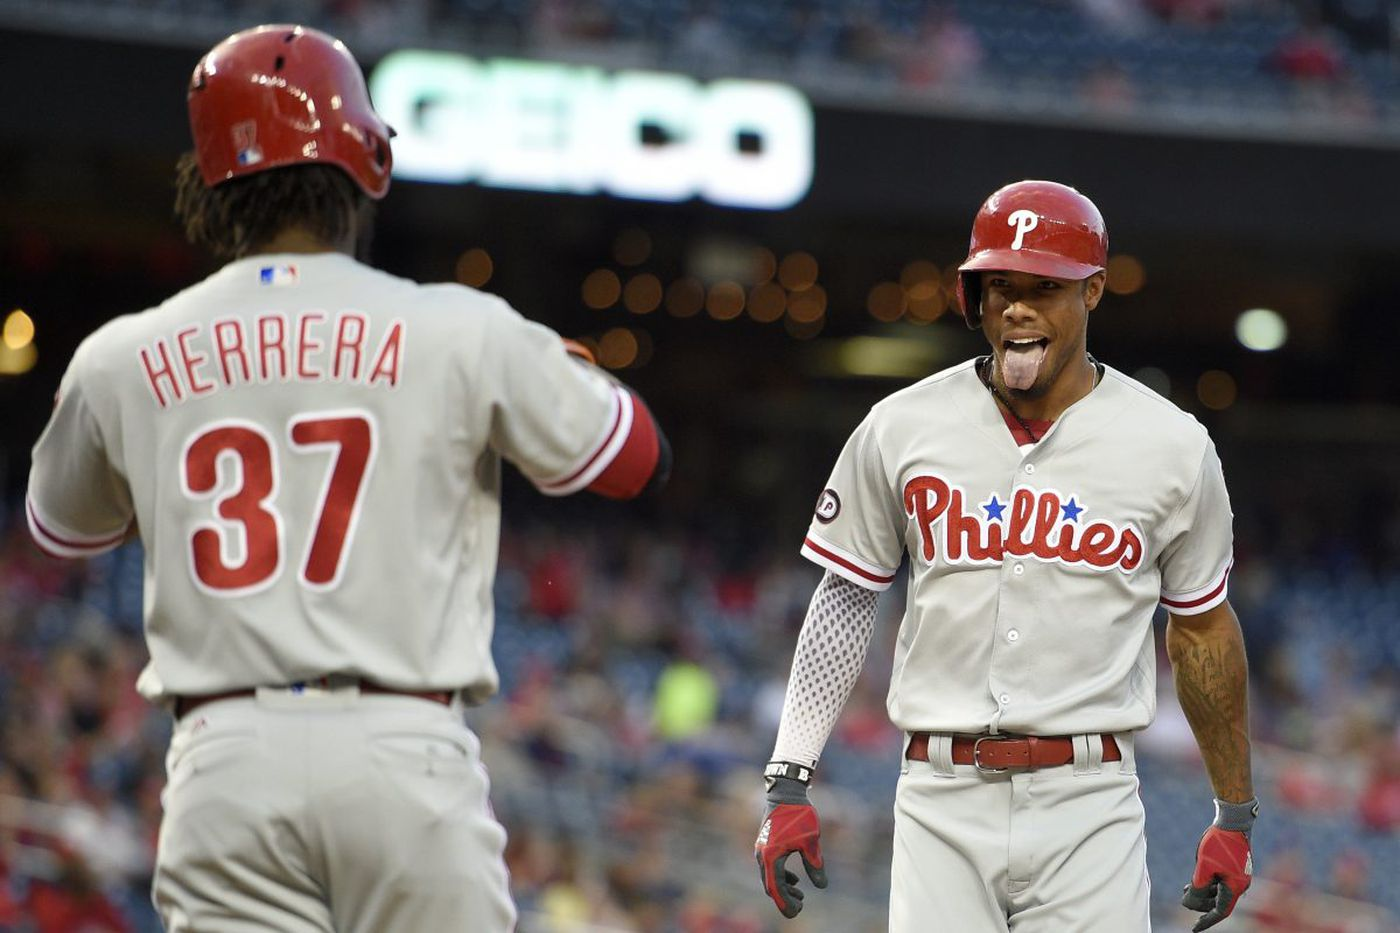 Nick Williams continues to pass tests as Phillies rookie